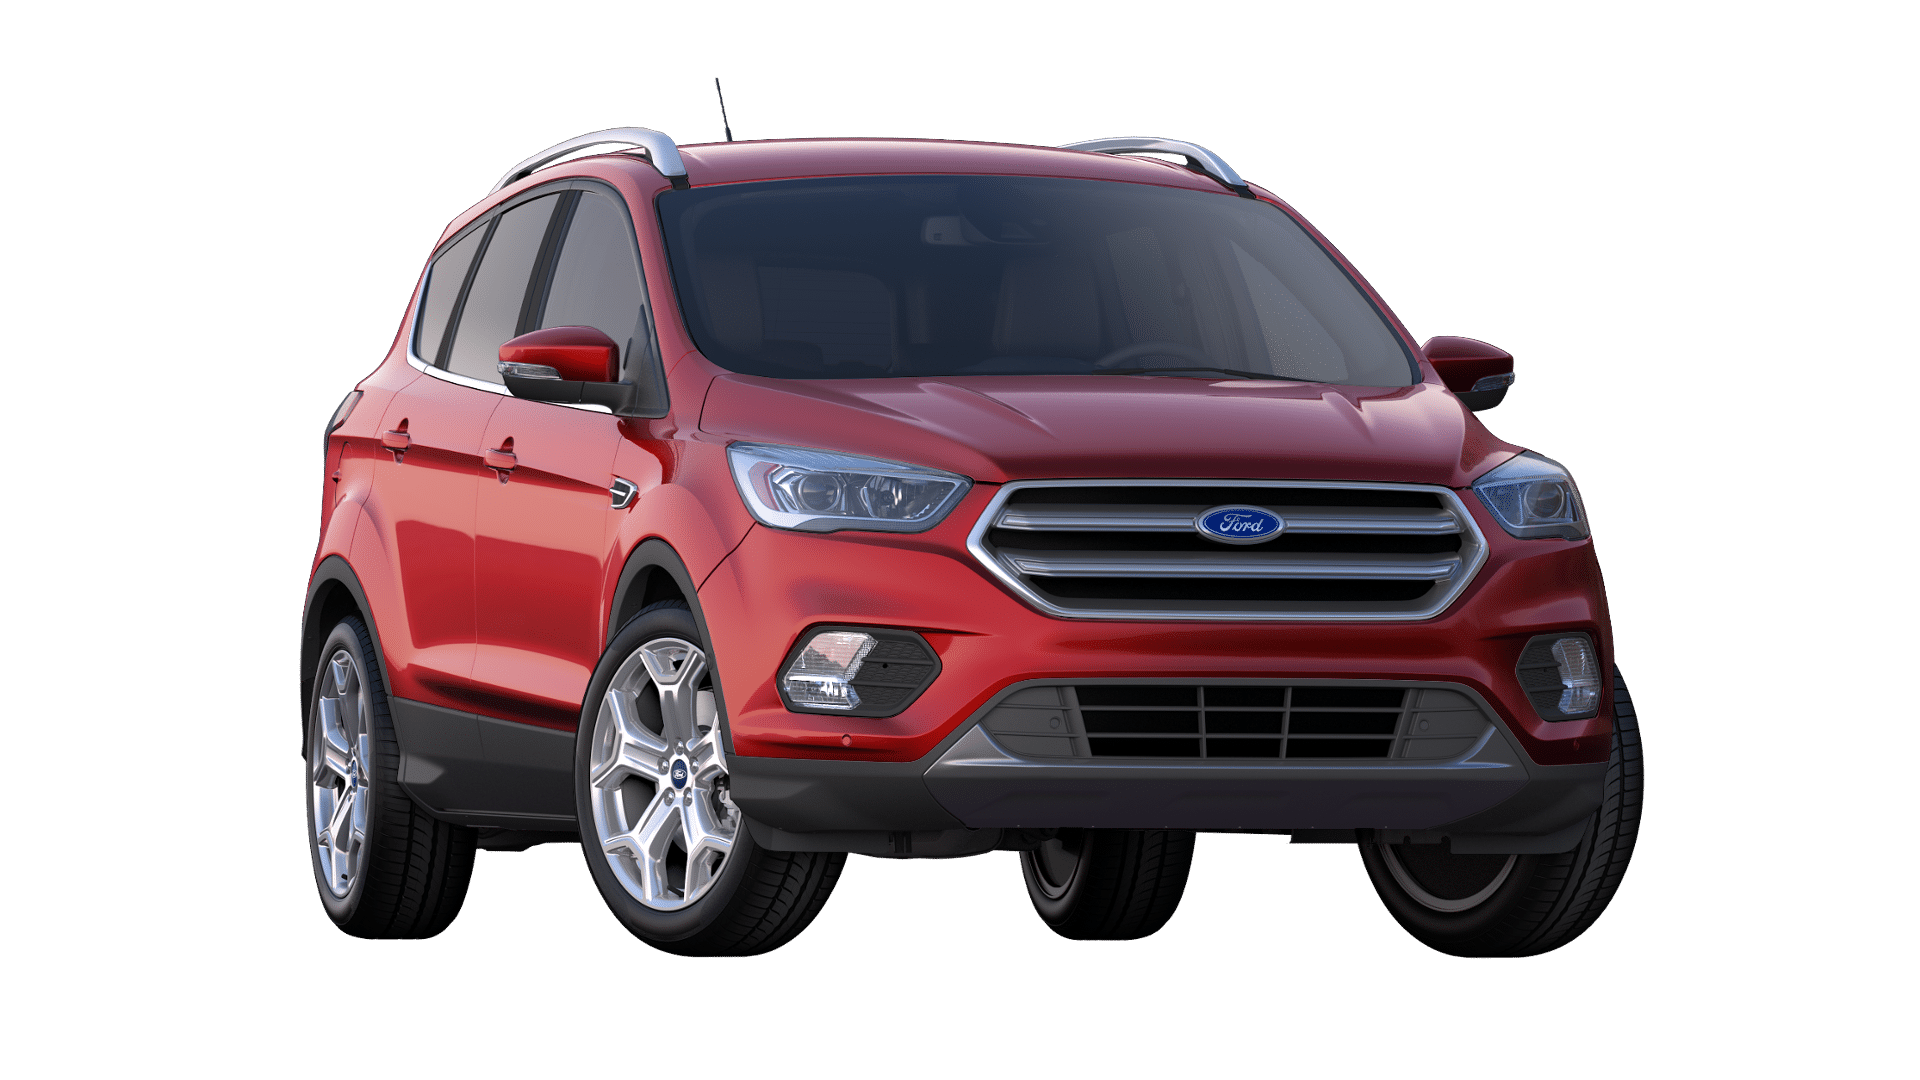 2019 Ford Escape Ruby Red Exterior Color